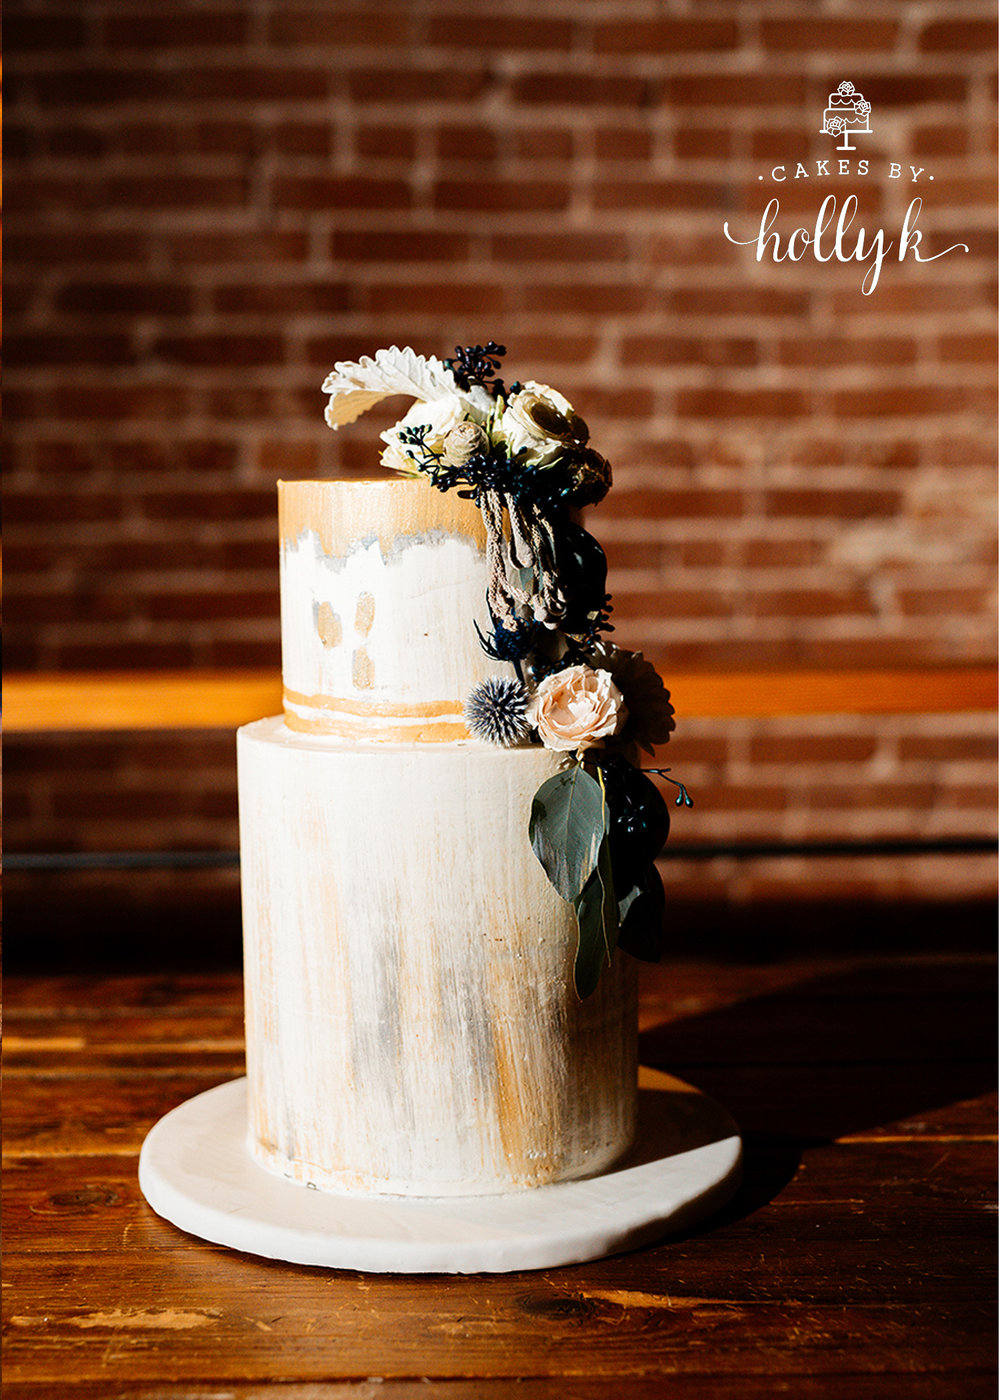 cakes by holly k